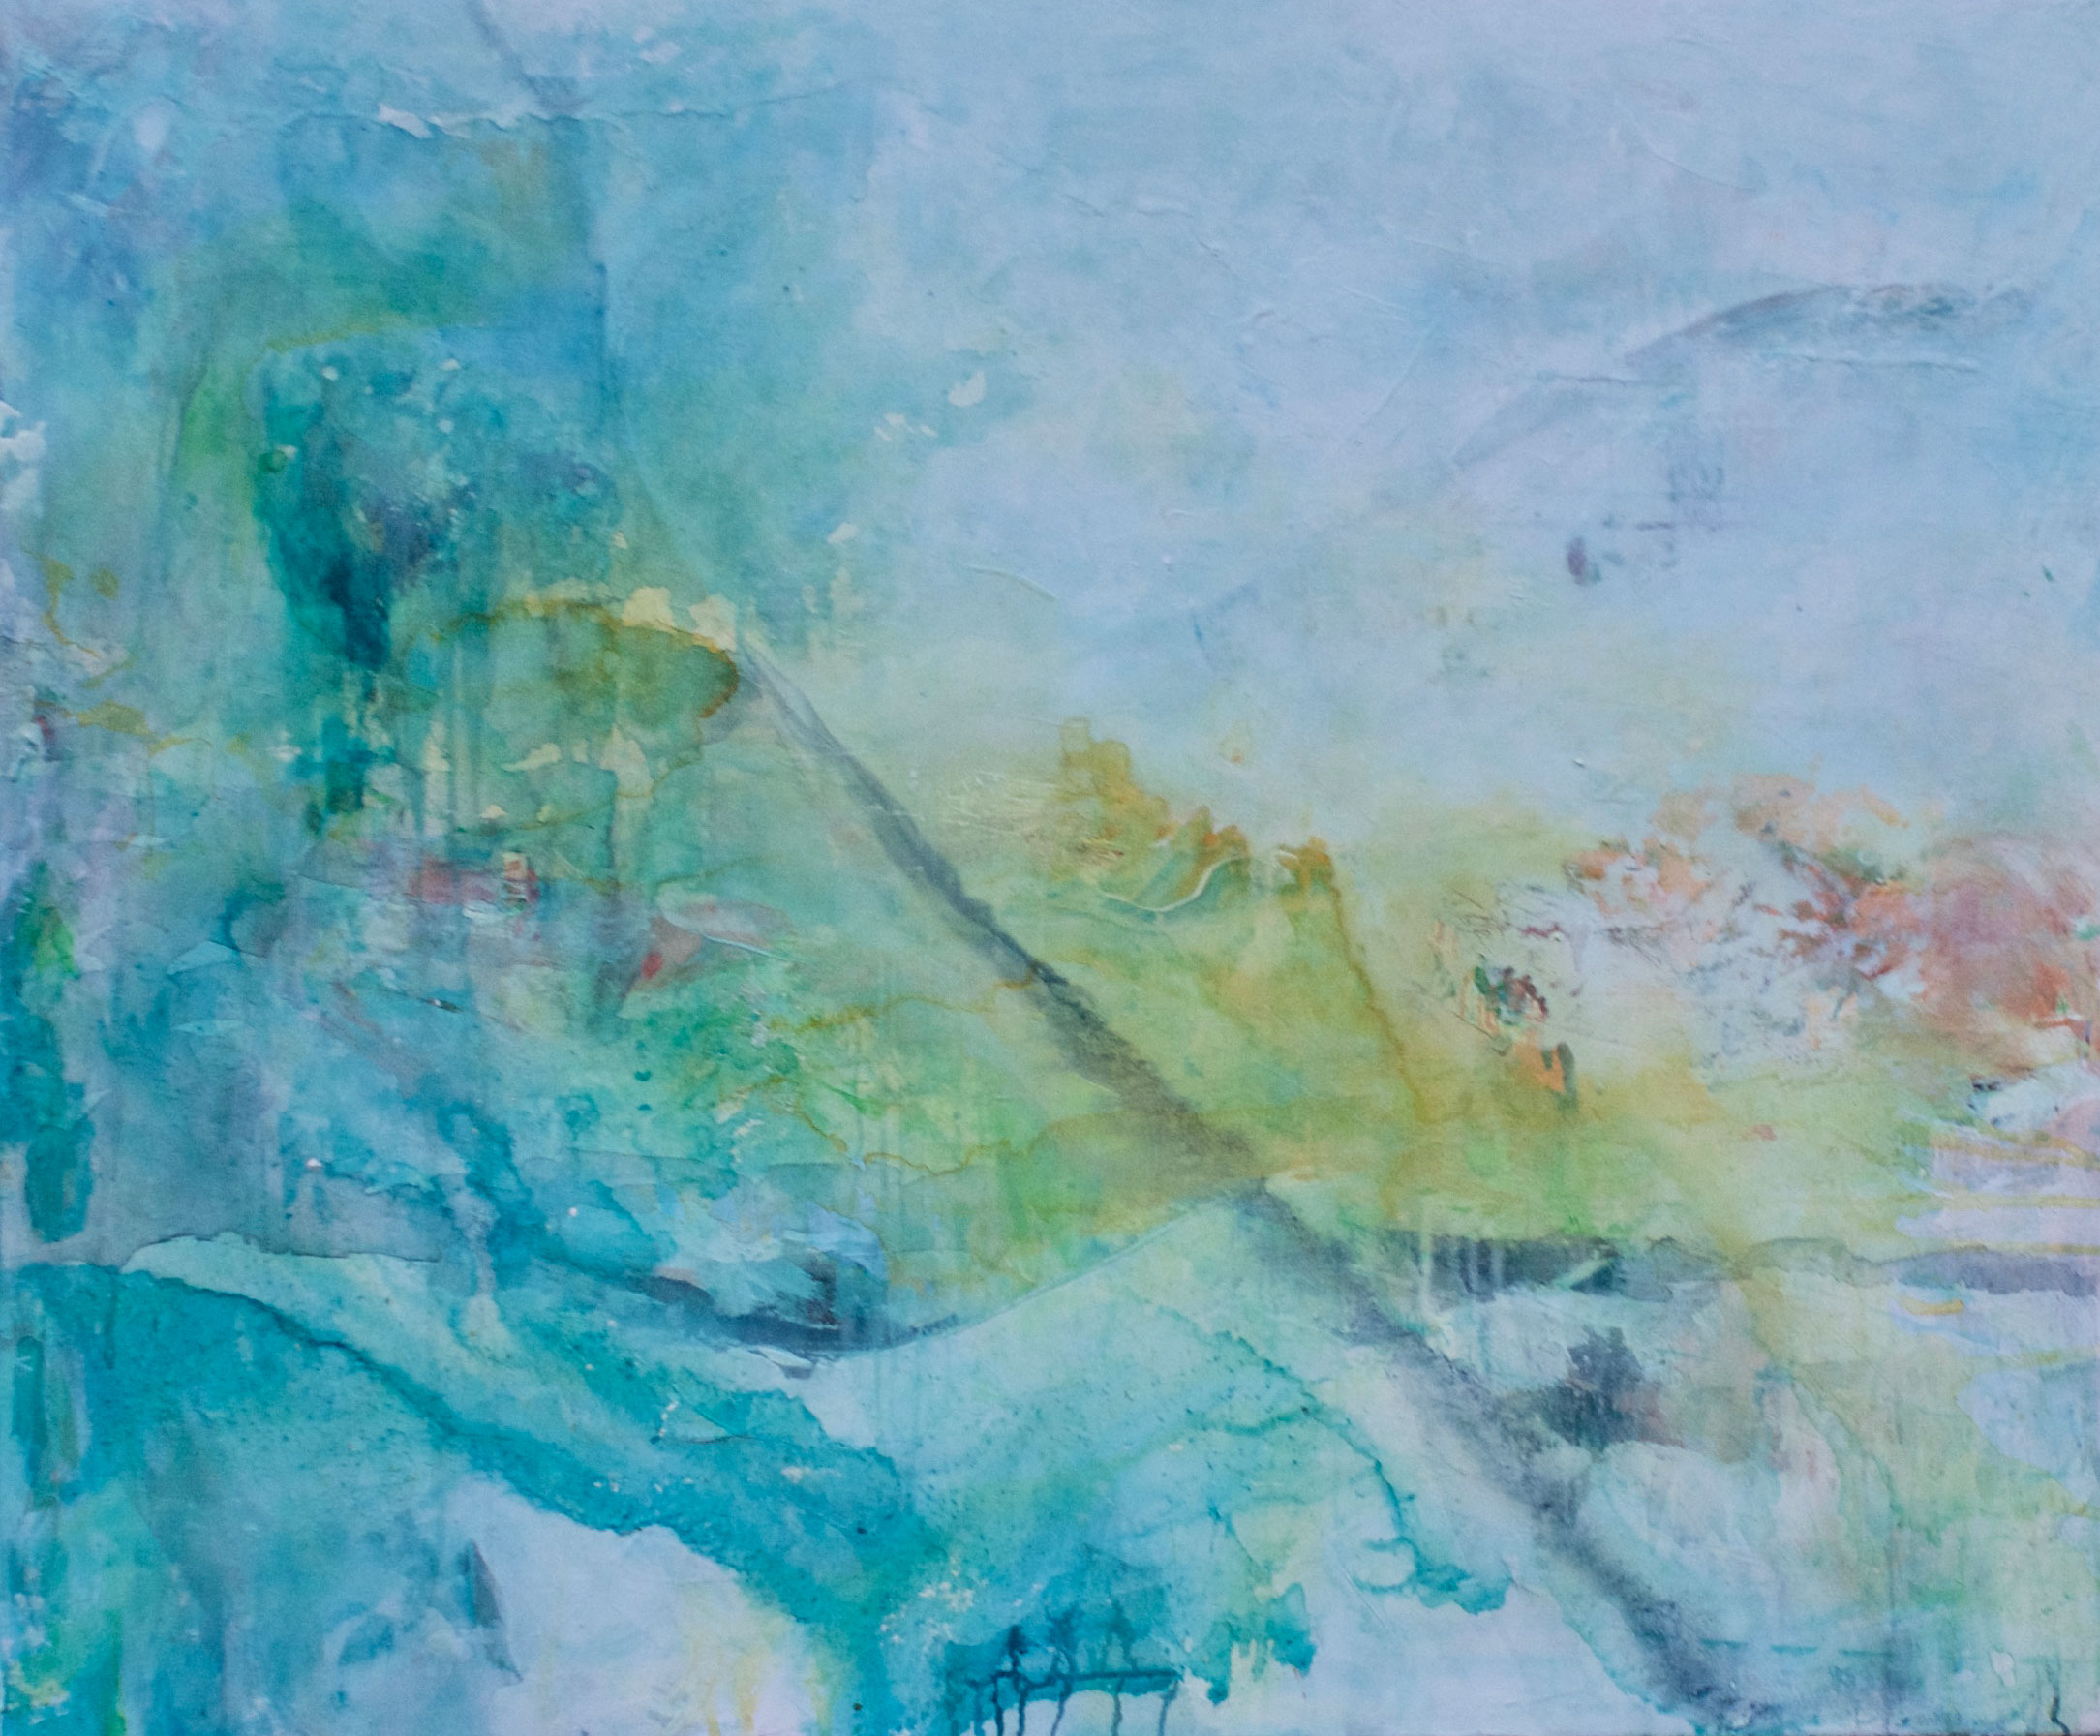 Dreamscape 100 X 120cm Mixed Media